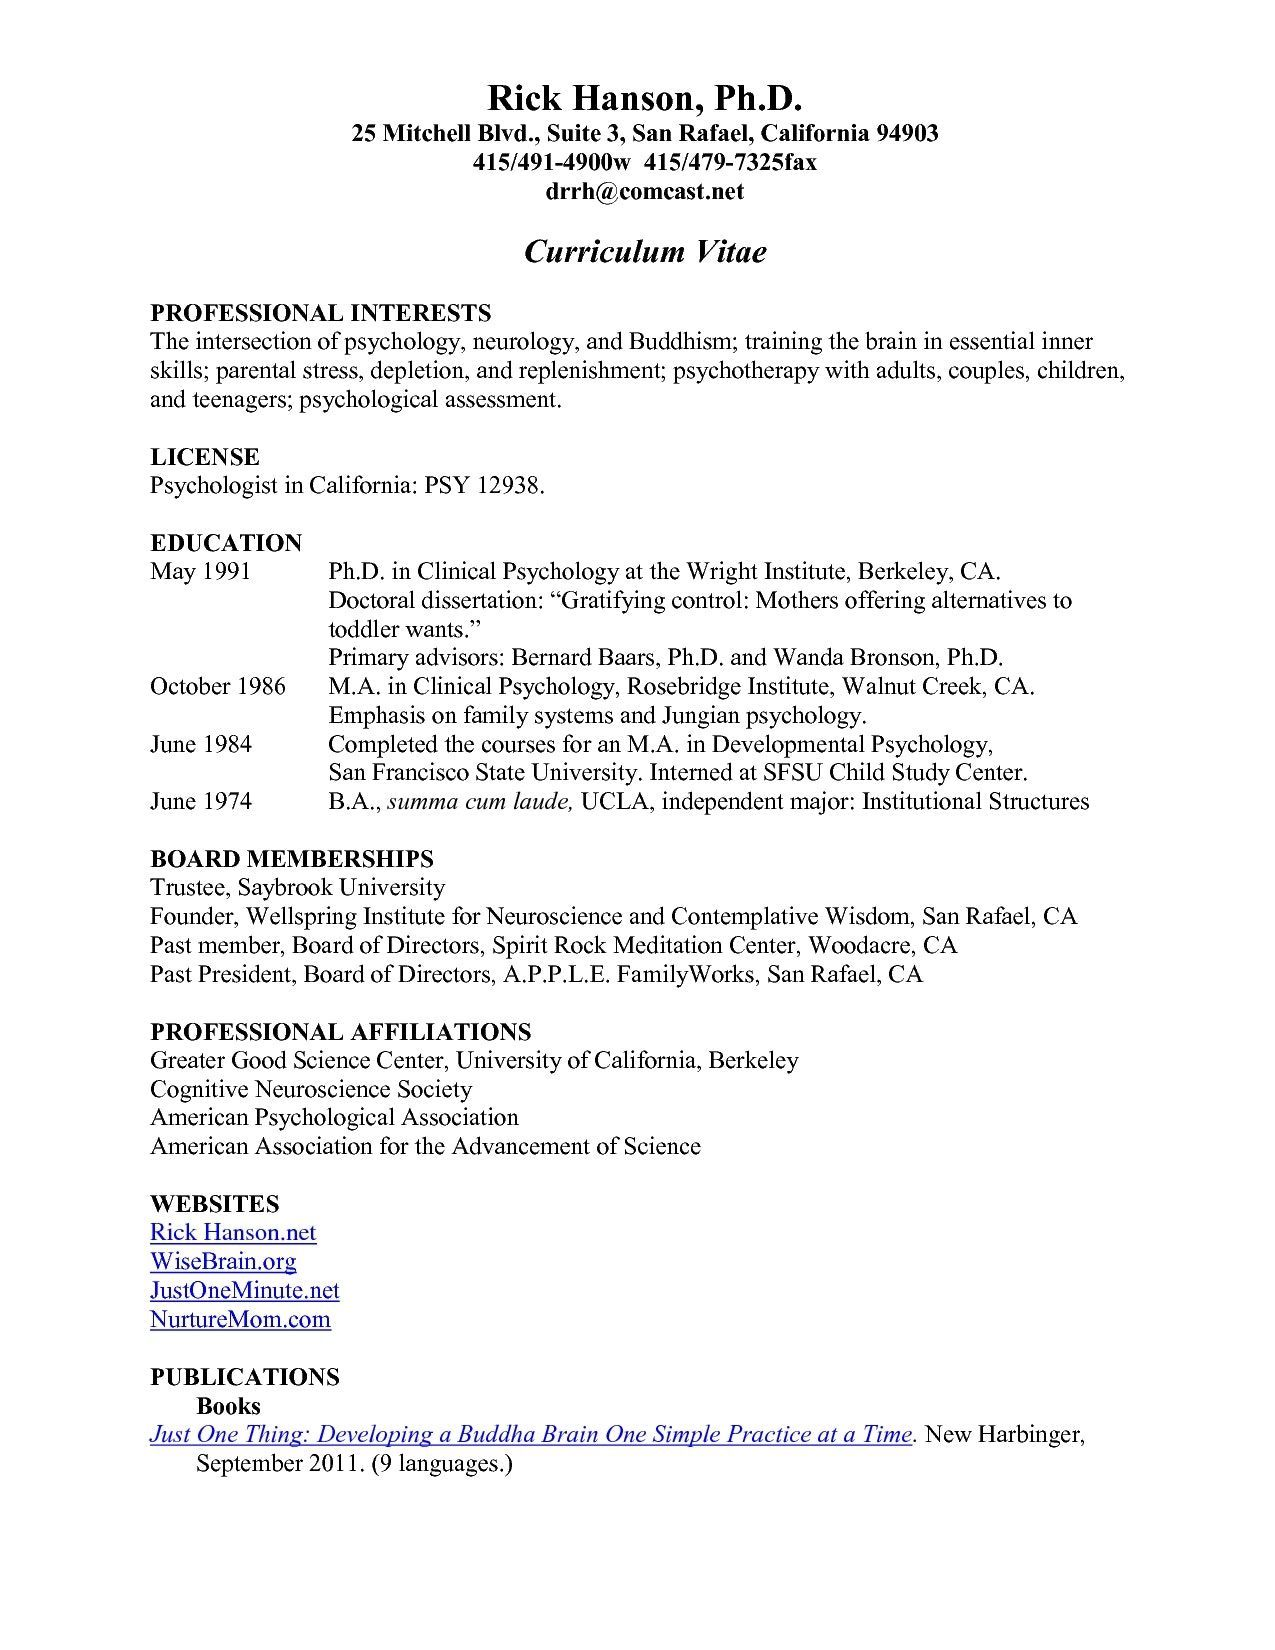 Cv Template Reddit Job resume examples, First job resume